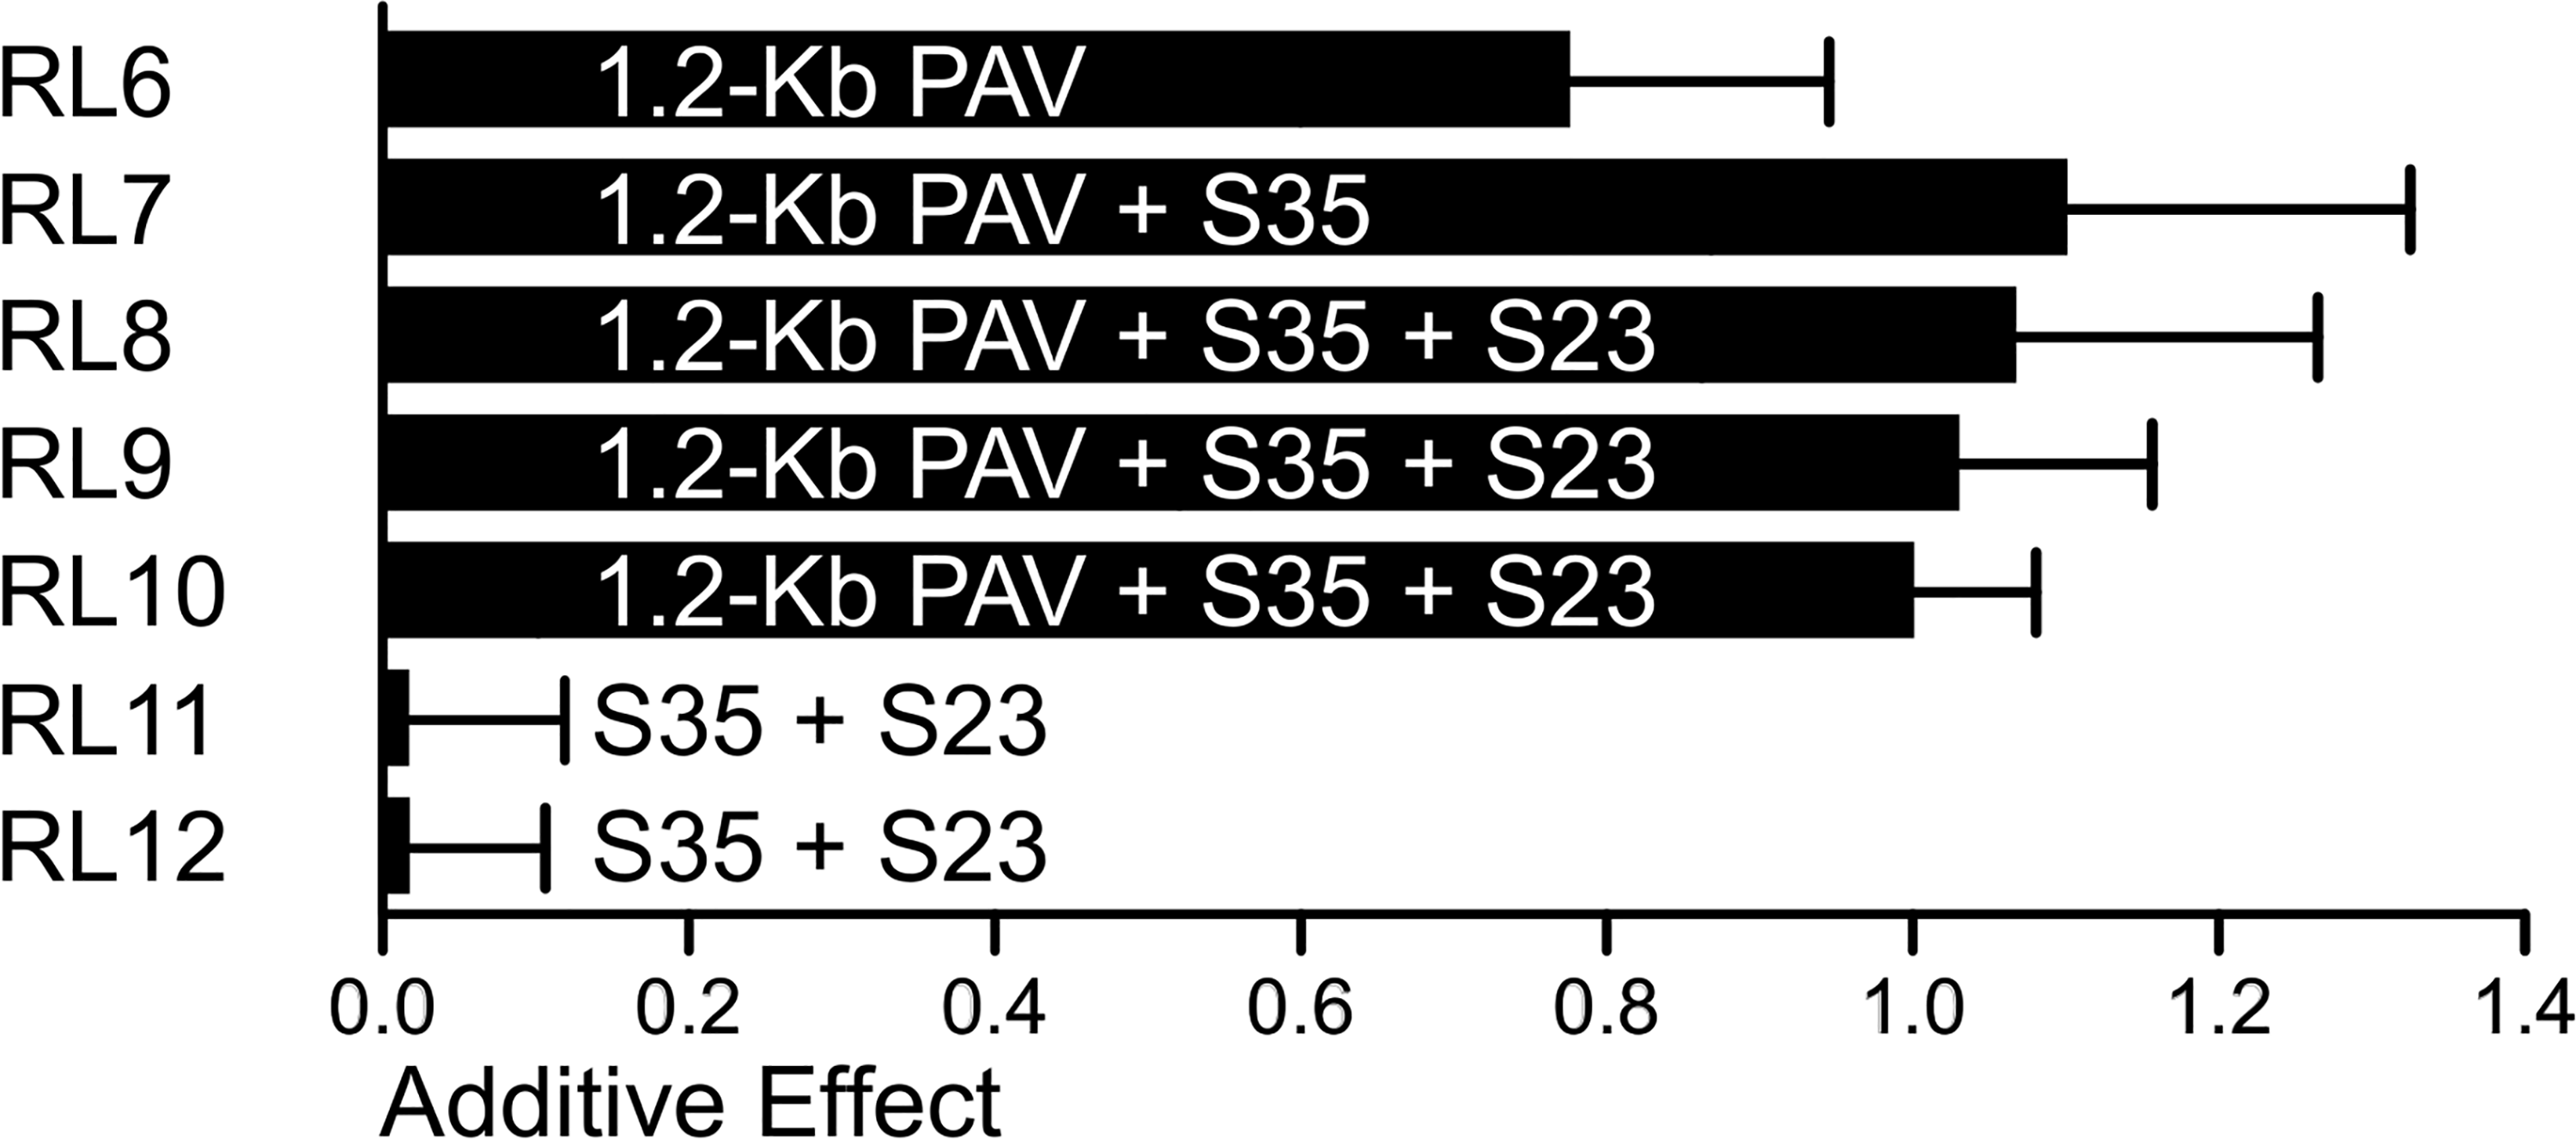 The additive effects of 1.2-Kb PAV and S35 estimated in RLs.